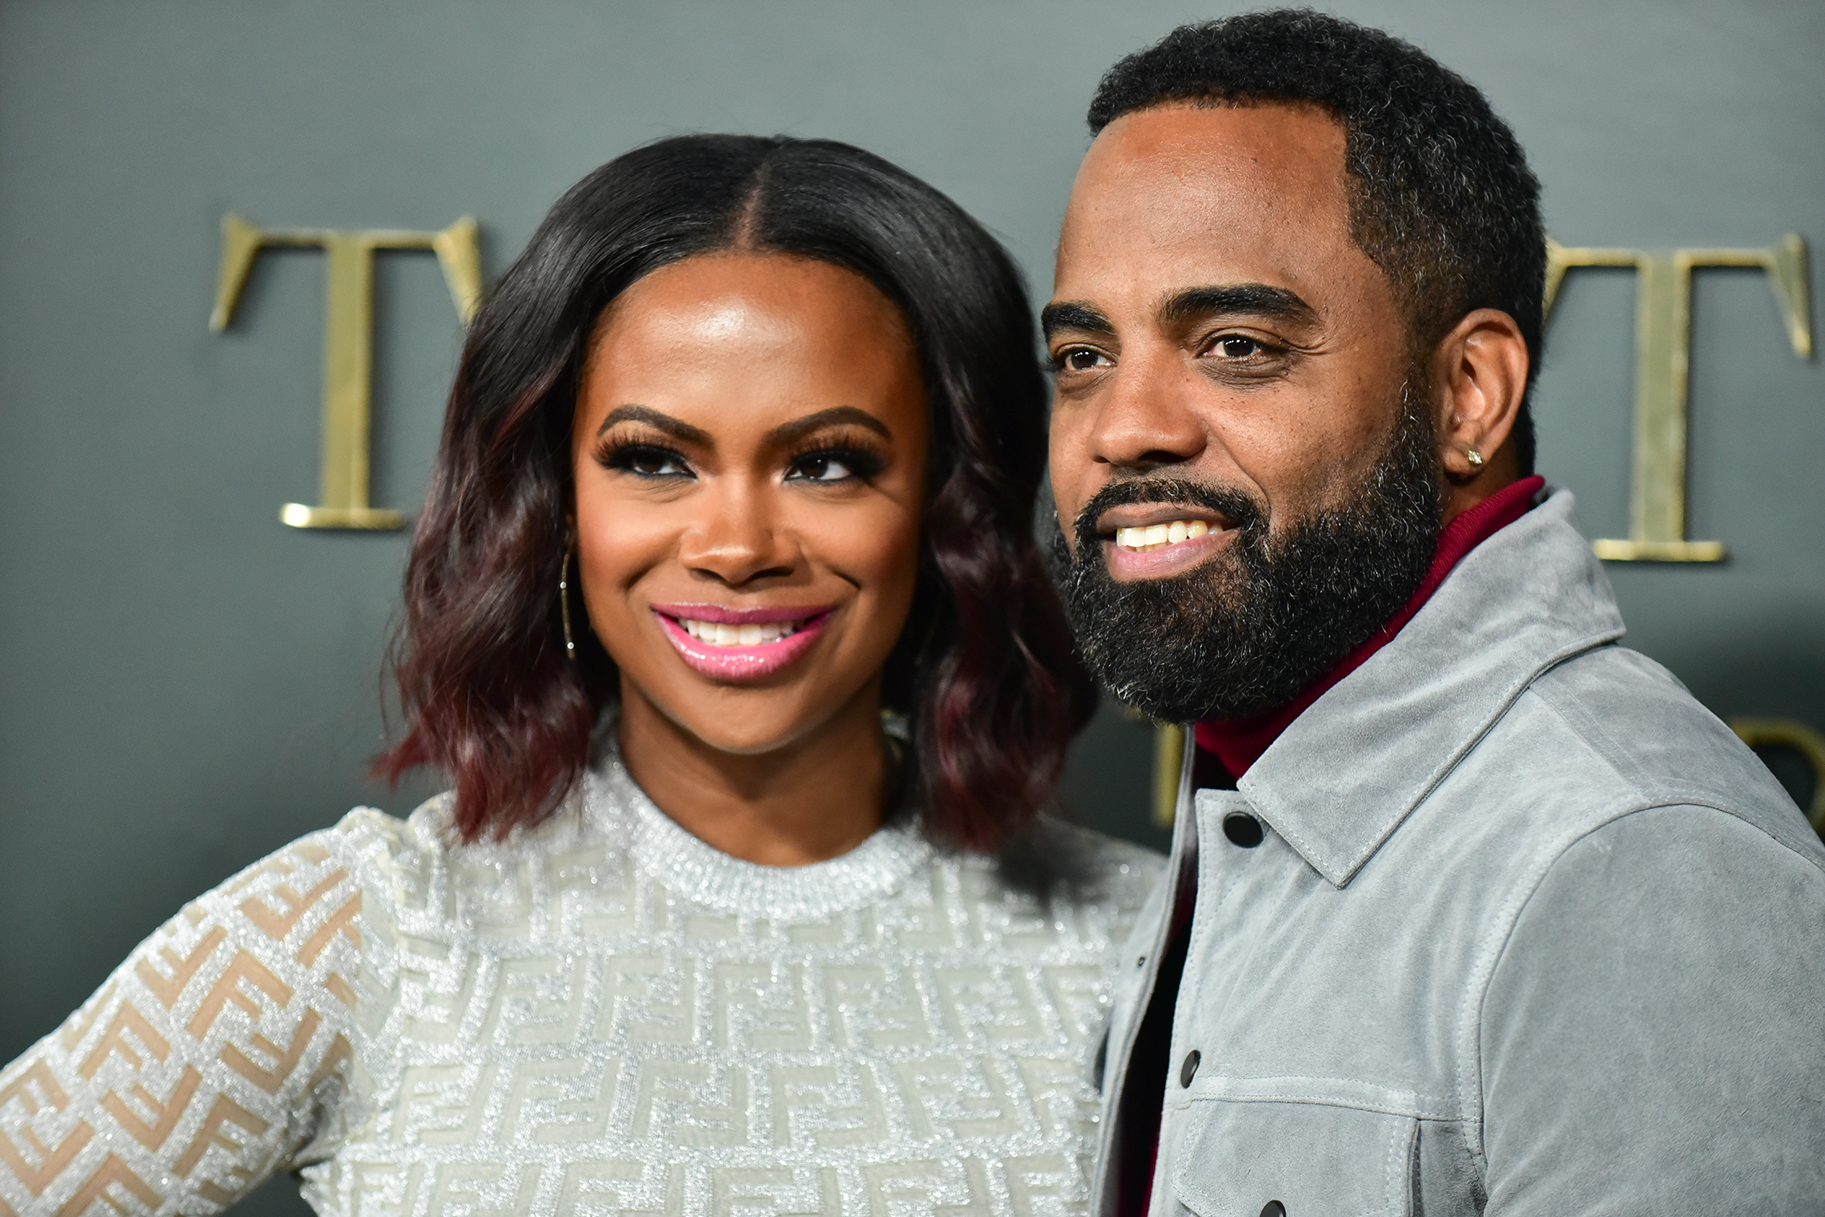 kandi-burruss-celebrates-seven-years-with-todd-tucker-check-out-her-video